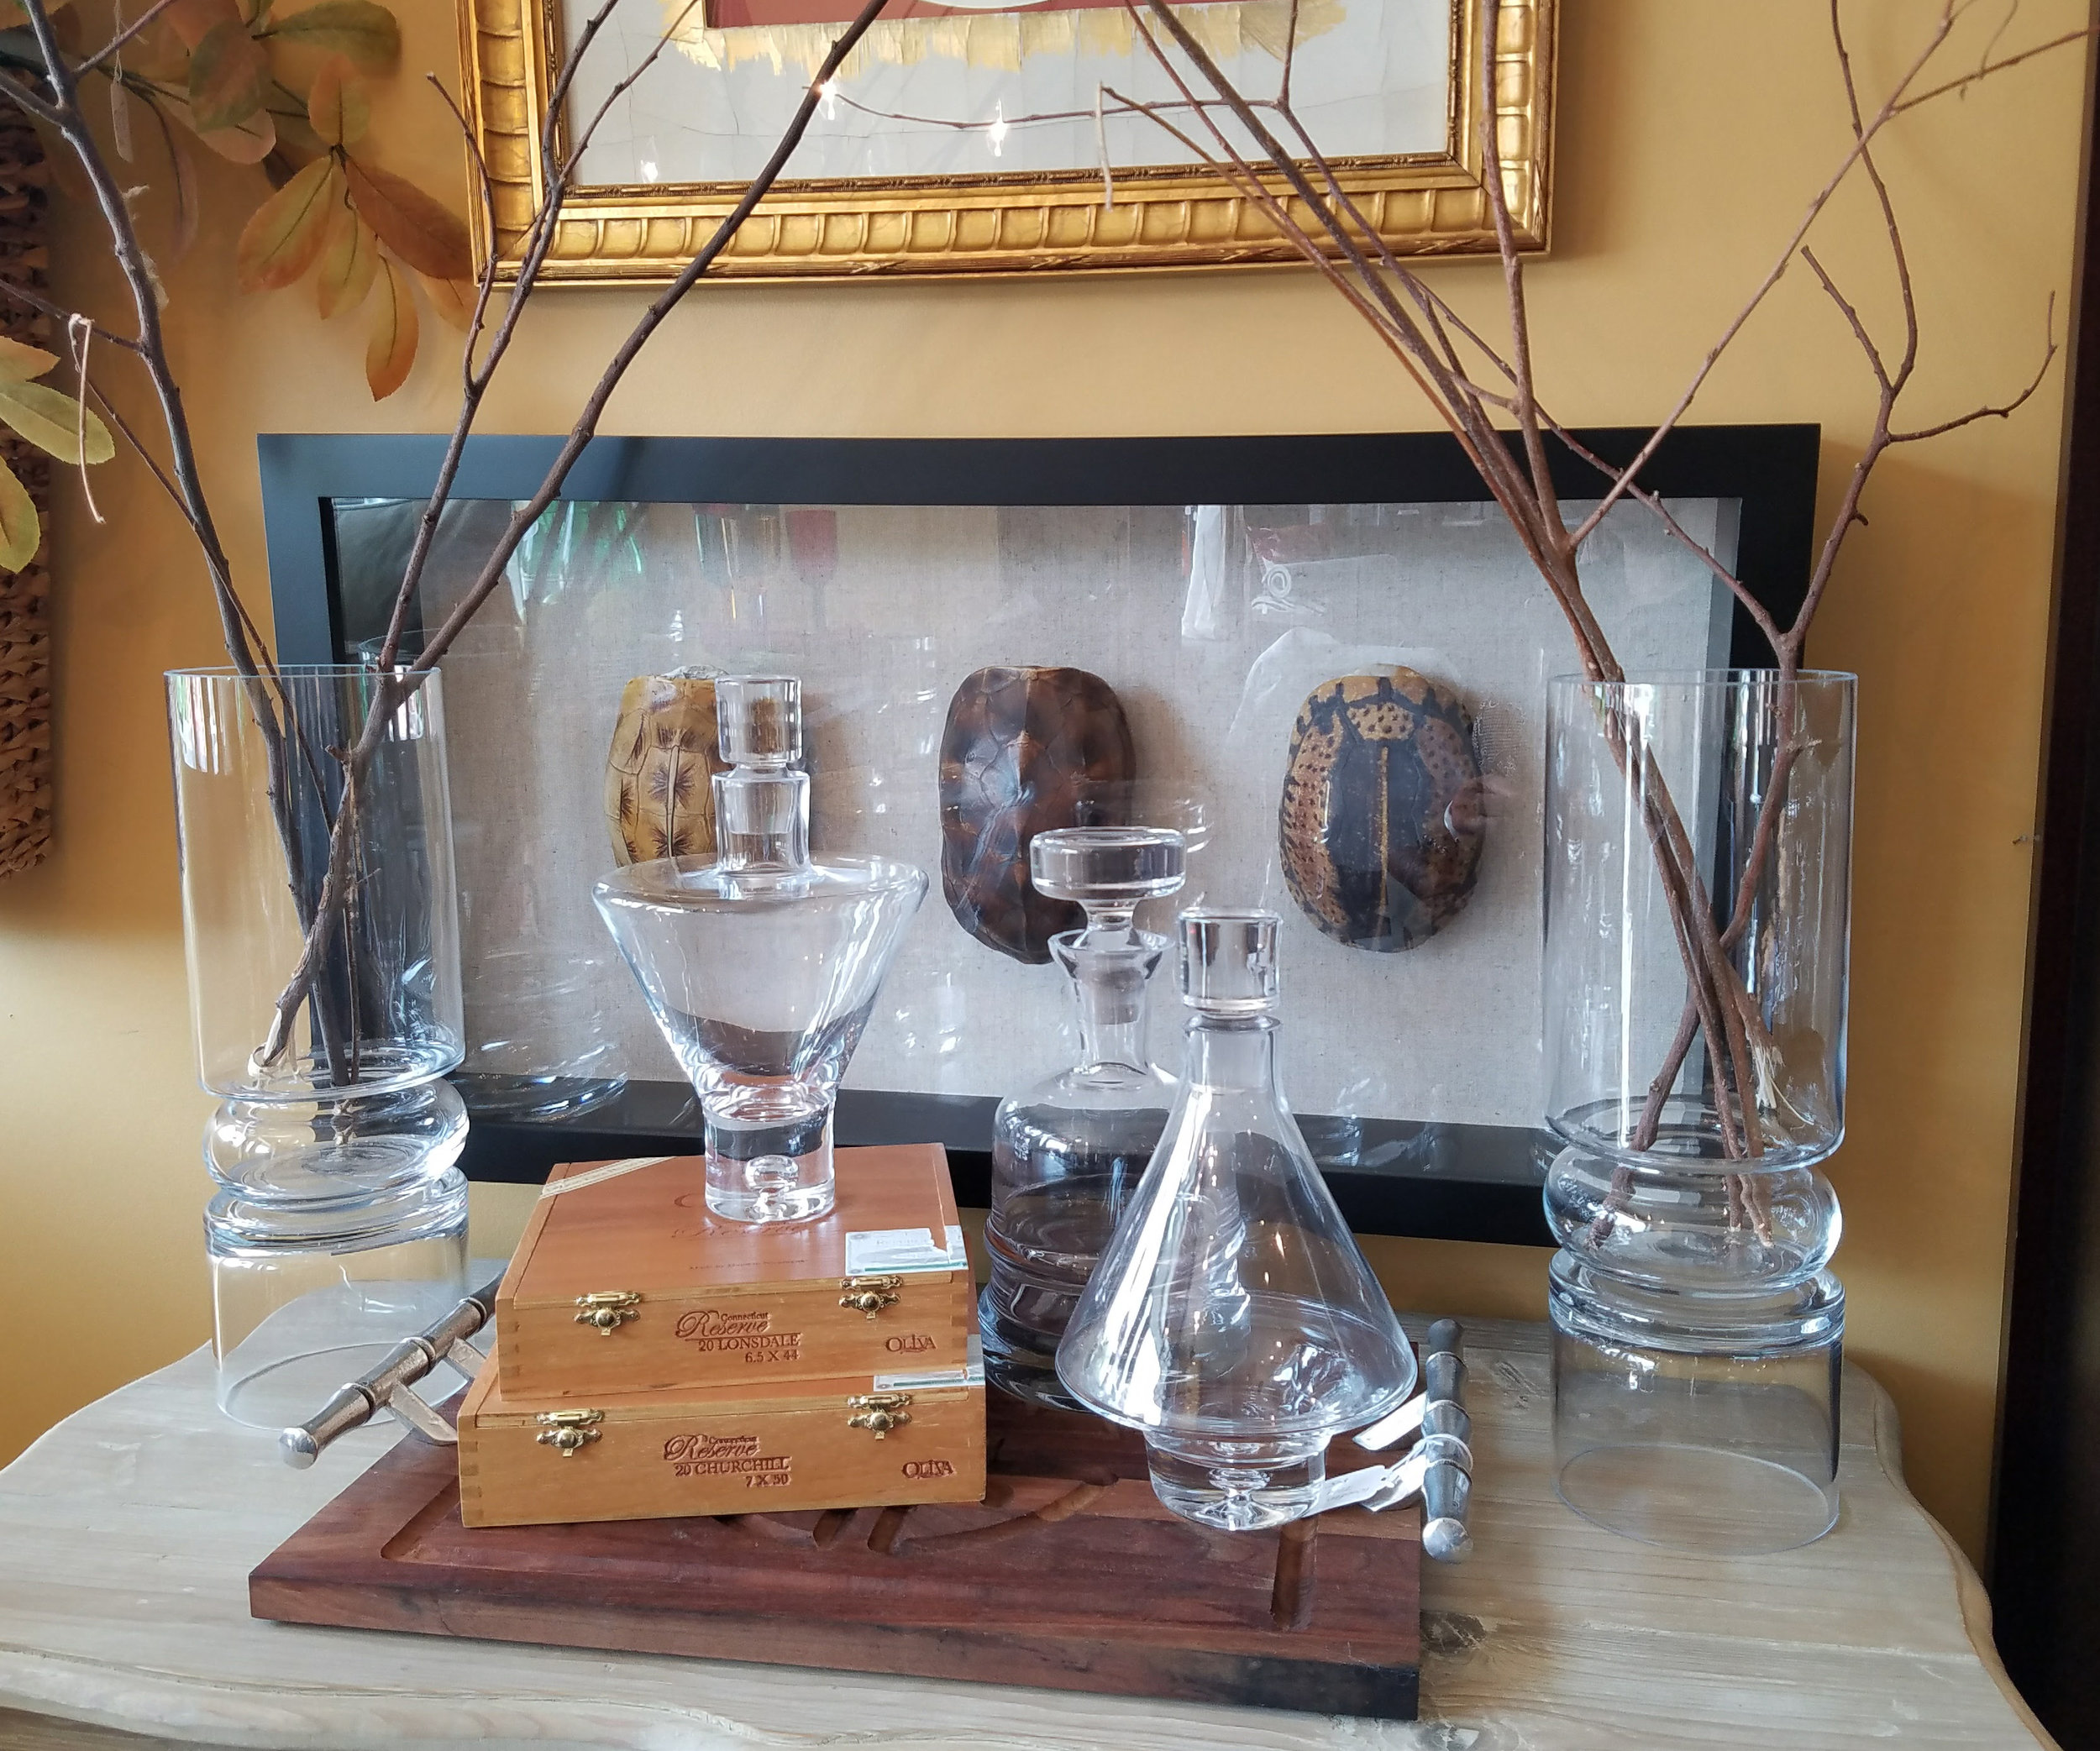 Don't be afraid to add a few decorative touches like framed artwork, cigar boxes, vases, or anything that will pair well with your bar accessories.